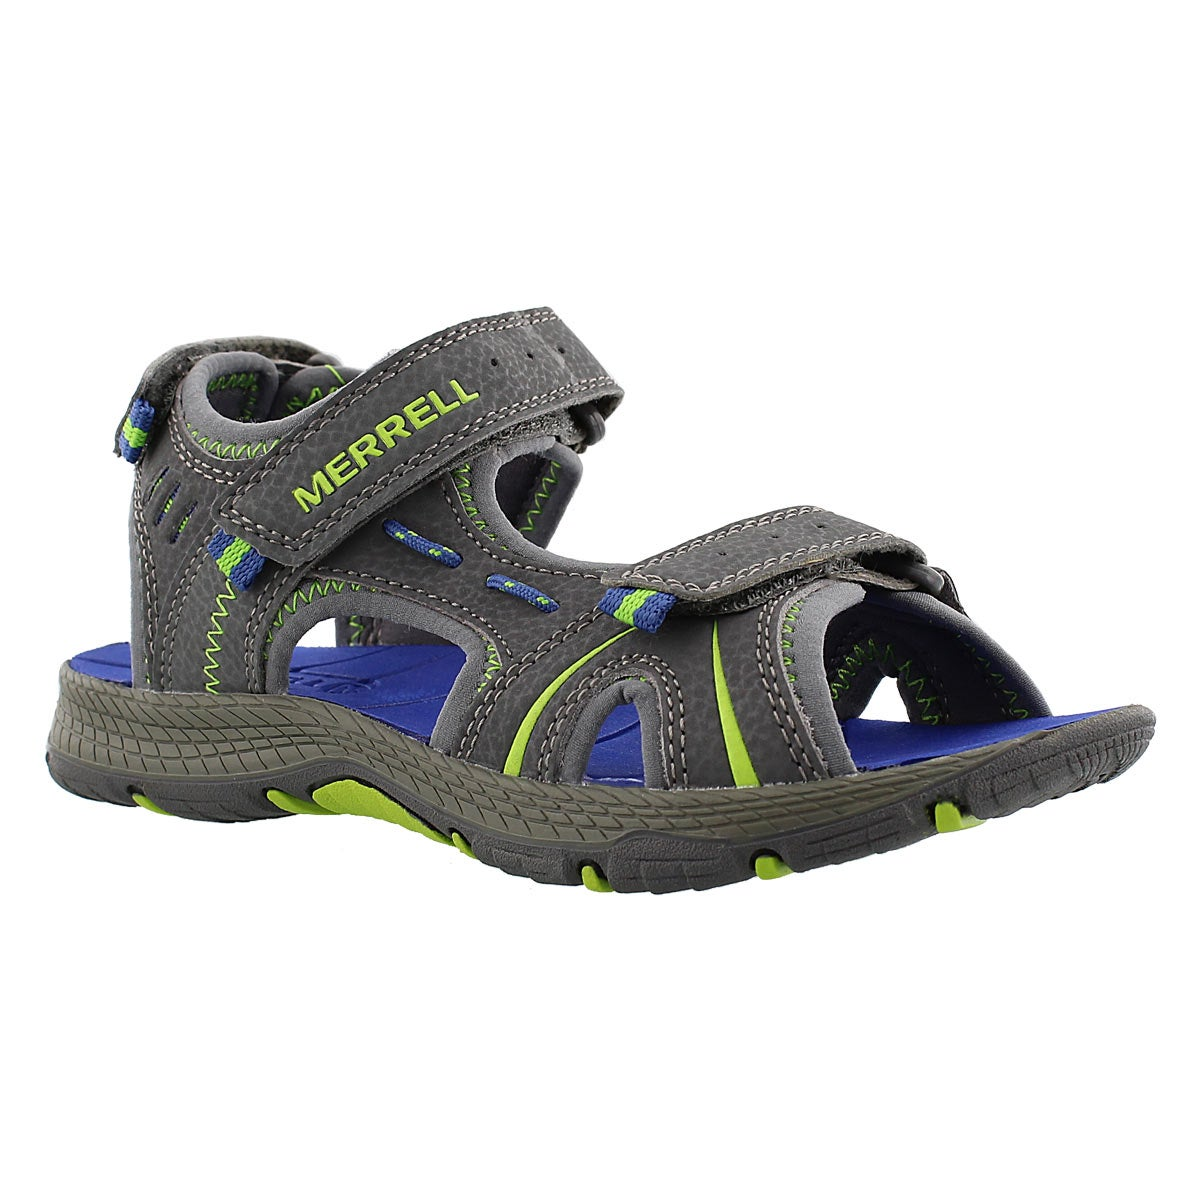 Bys Panther grey/blue sport sandal